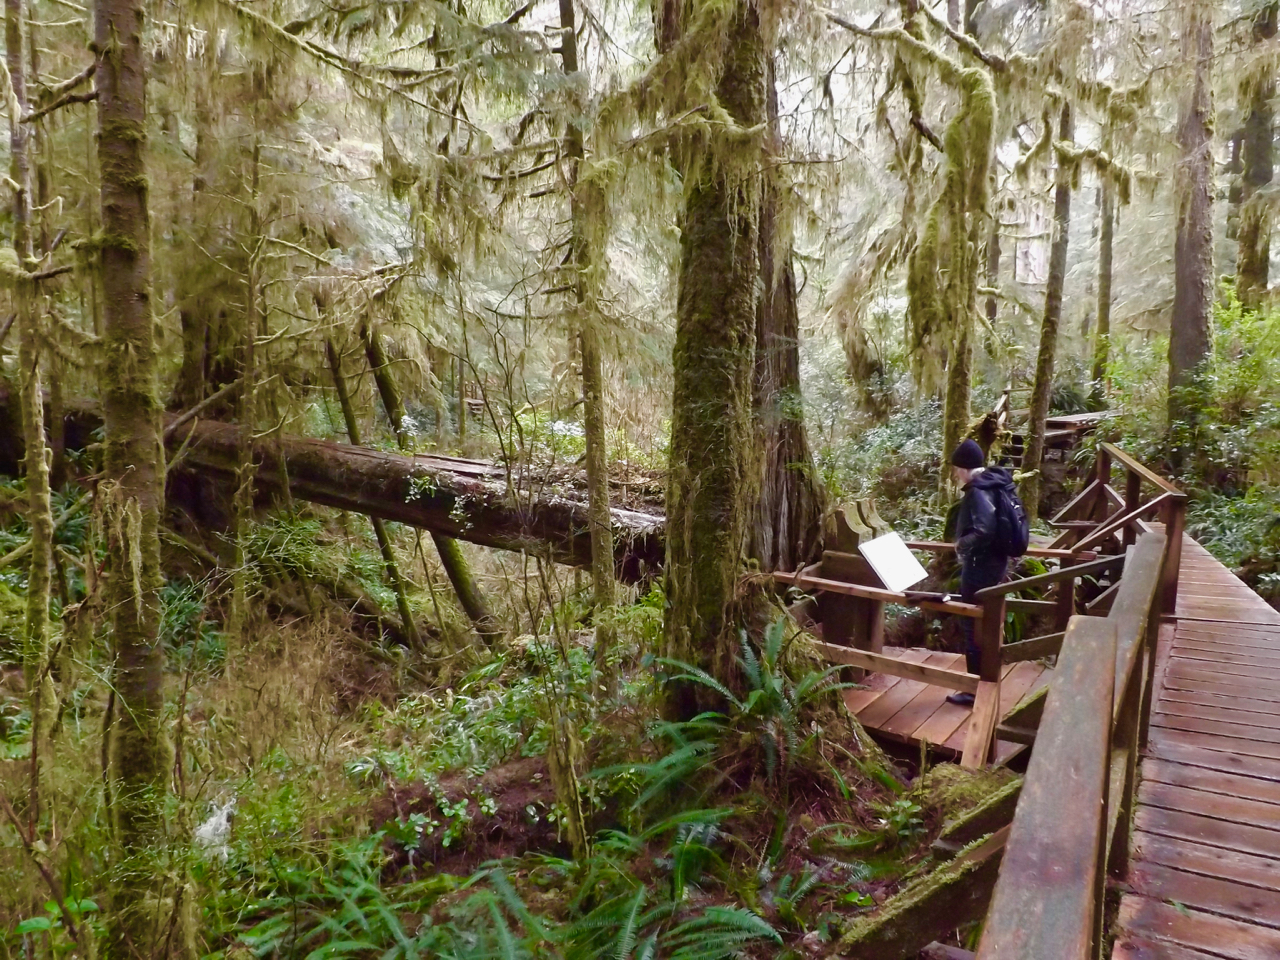 Forests, clayoquot sound, shamanism, mayan, daykeeper, ben, family, offspring, interdependent, responsibility, support, kindred, clan, kin, devotion, intimate, HEALINGthroughCEREMONY.com, Michele Fire-River Heart